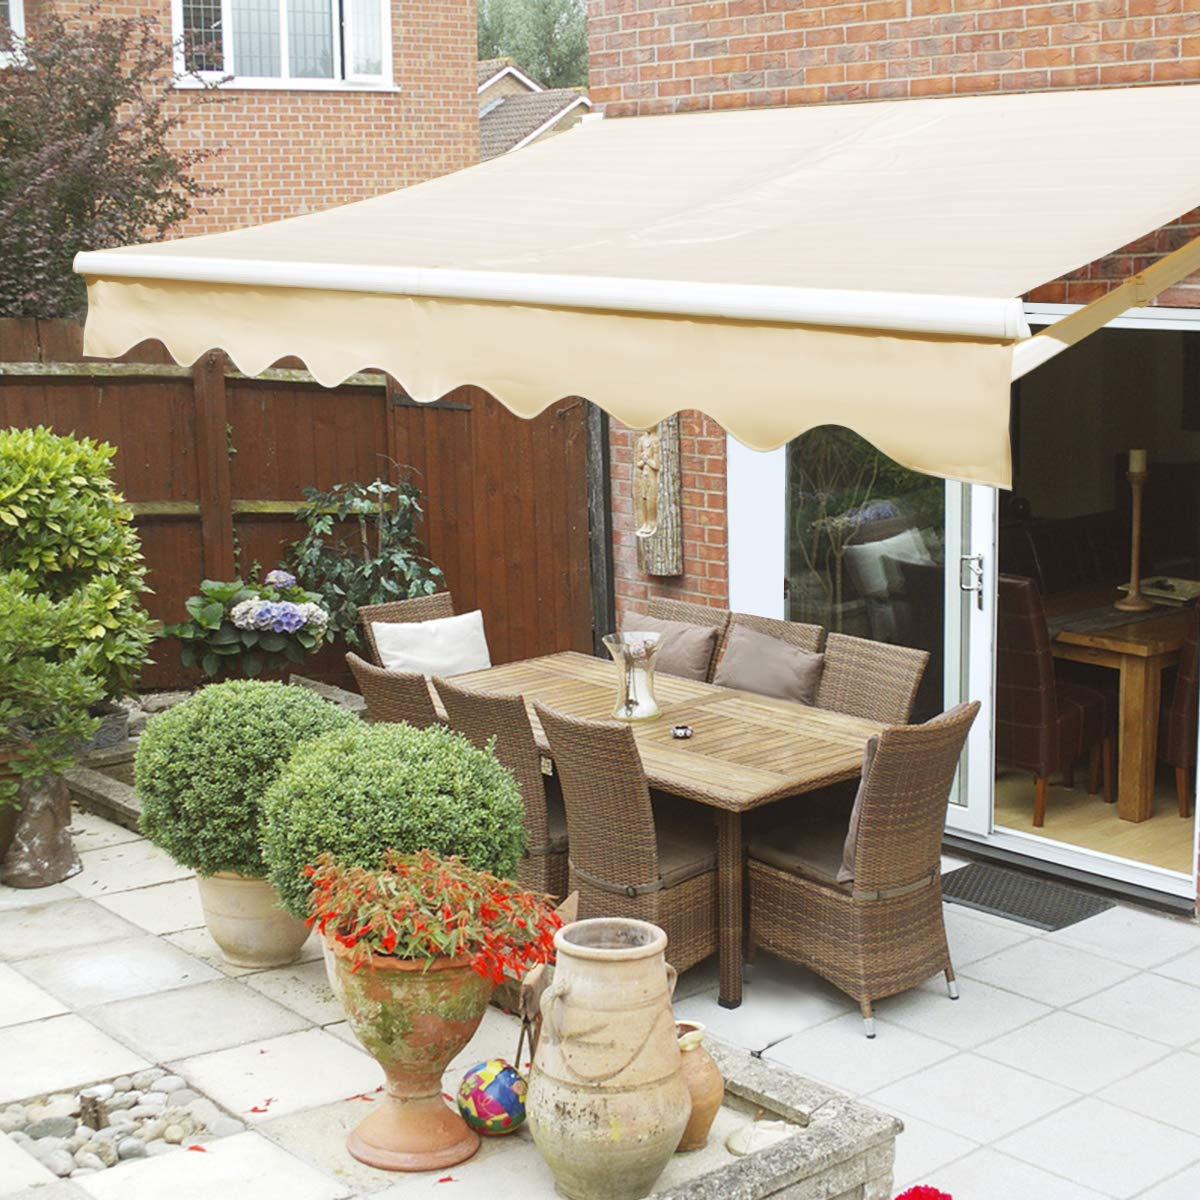 10' x 8' Patio Manual Retractable Sun Shade Awning Tan Generic